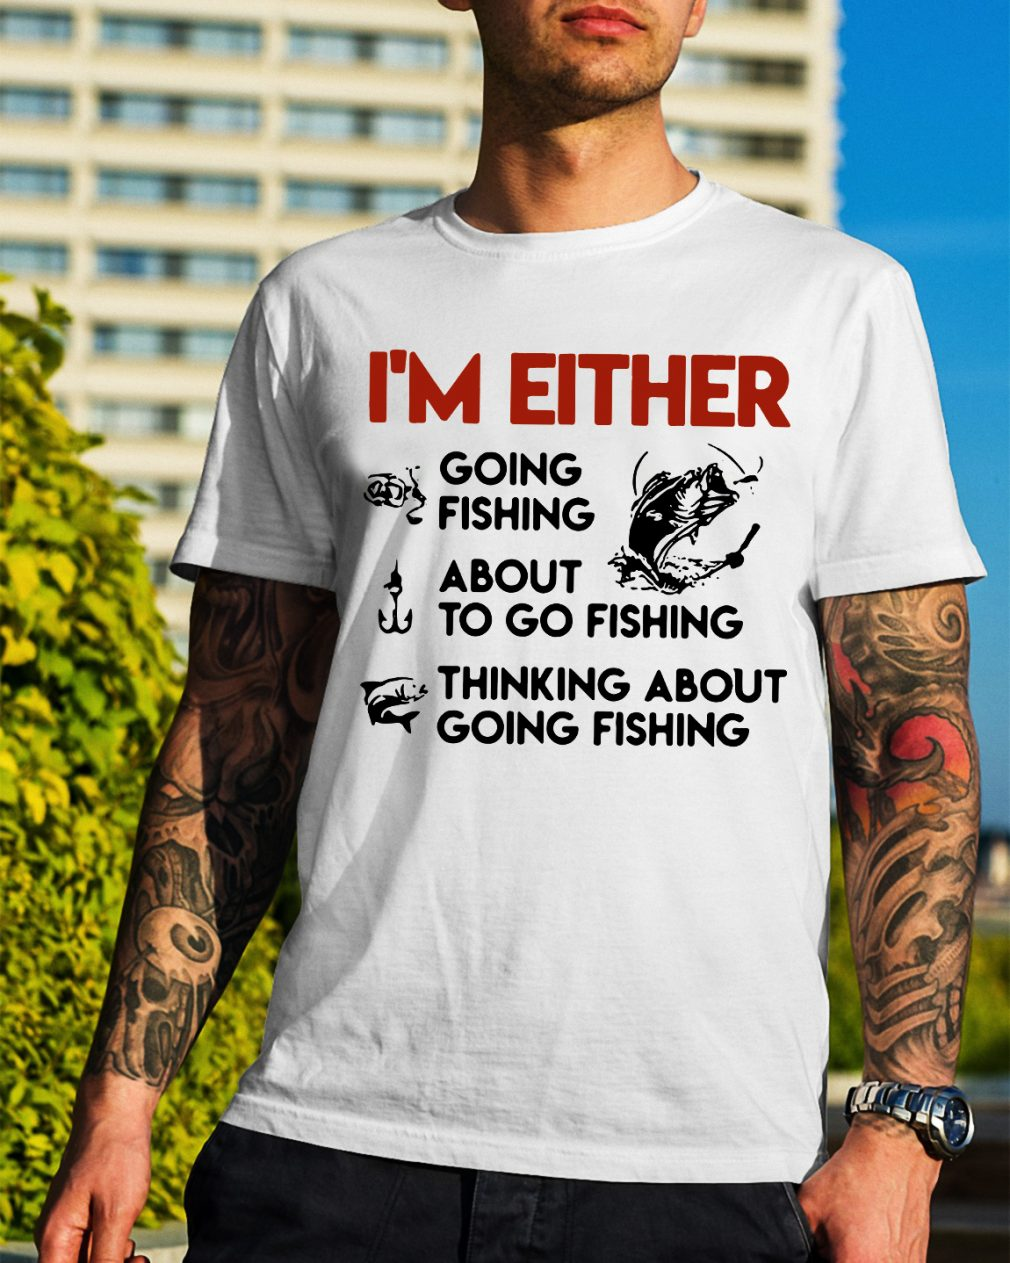 I'm either going fishing about to go fishing thinking about going fishing shirt